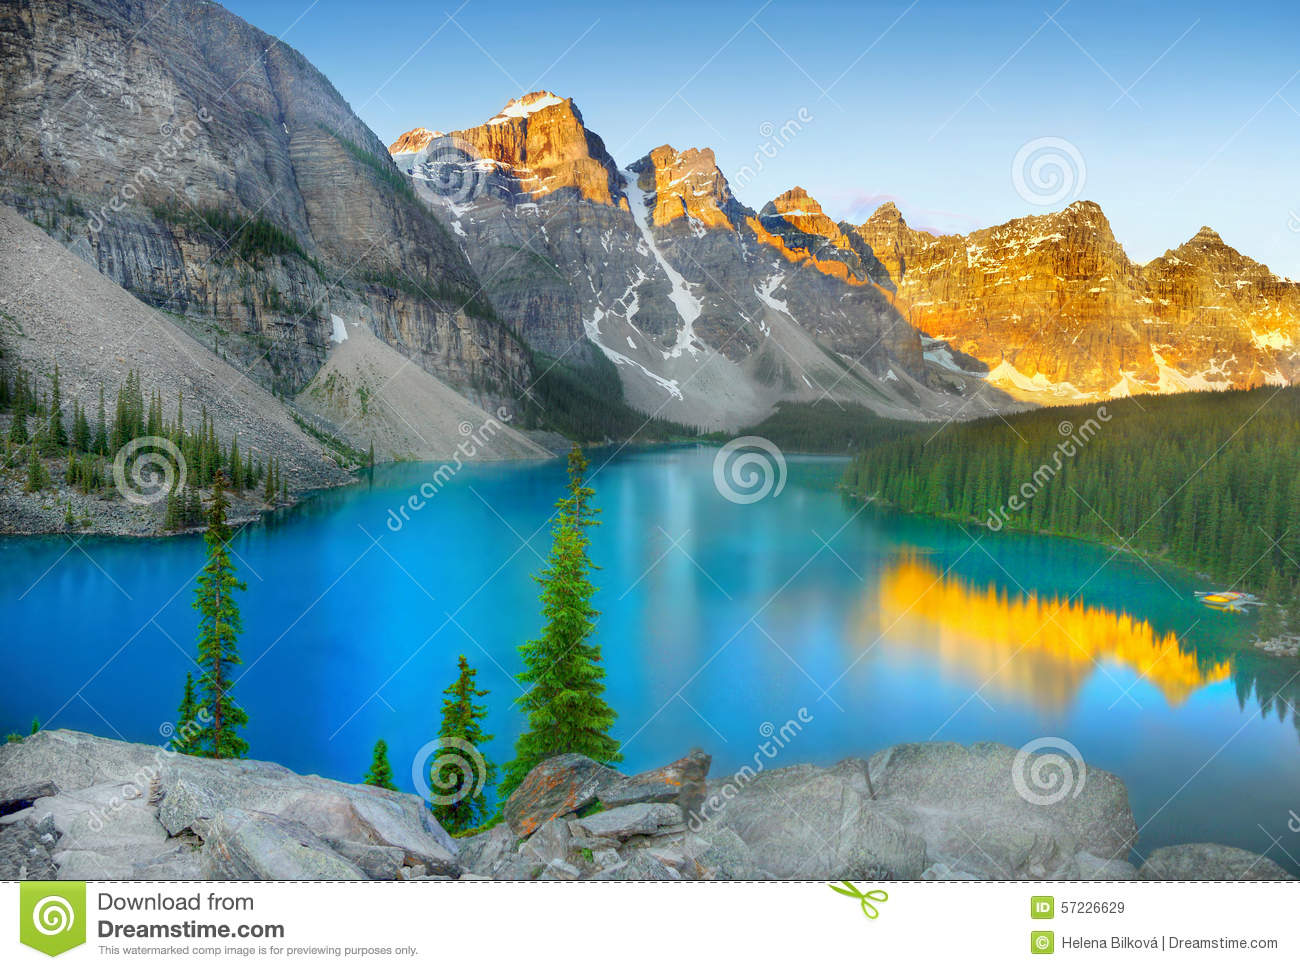 Sunrise at Moraine lake in Banff National park, Alberta, Canada.